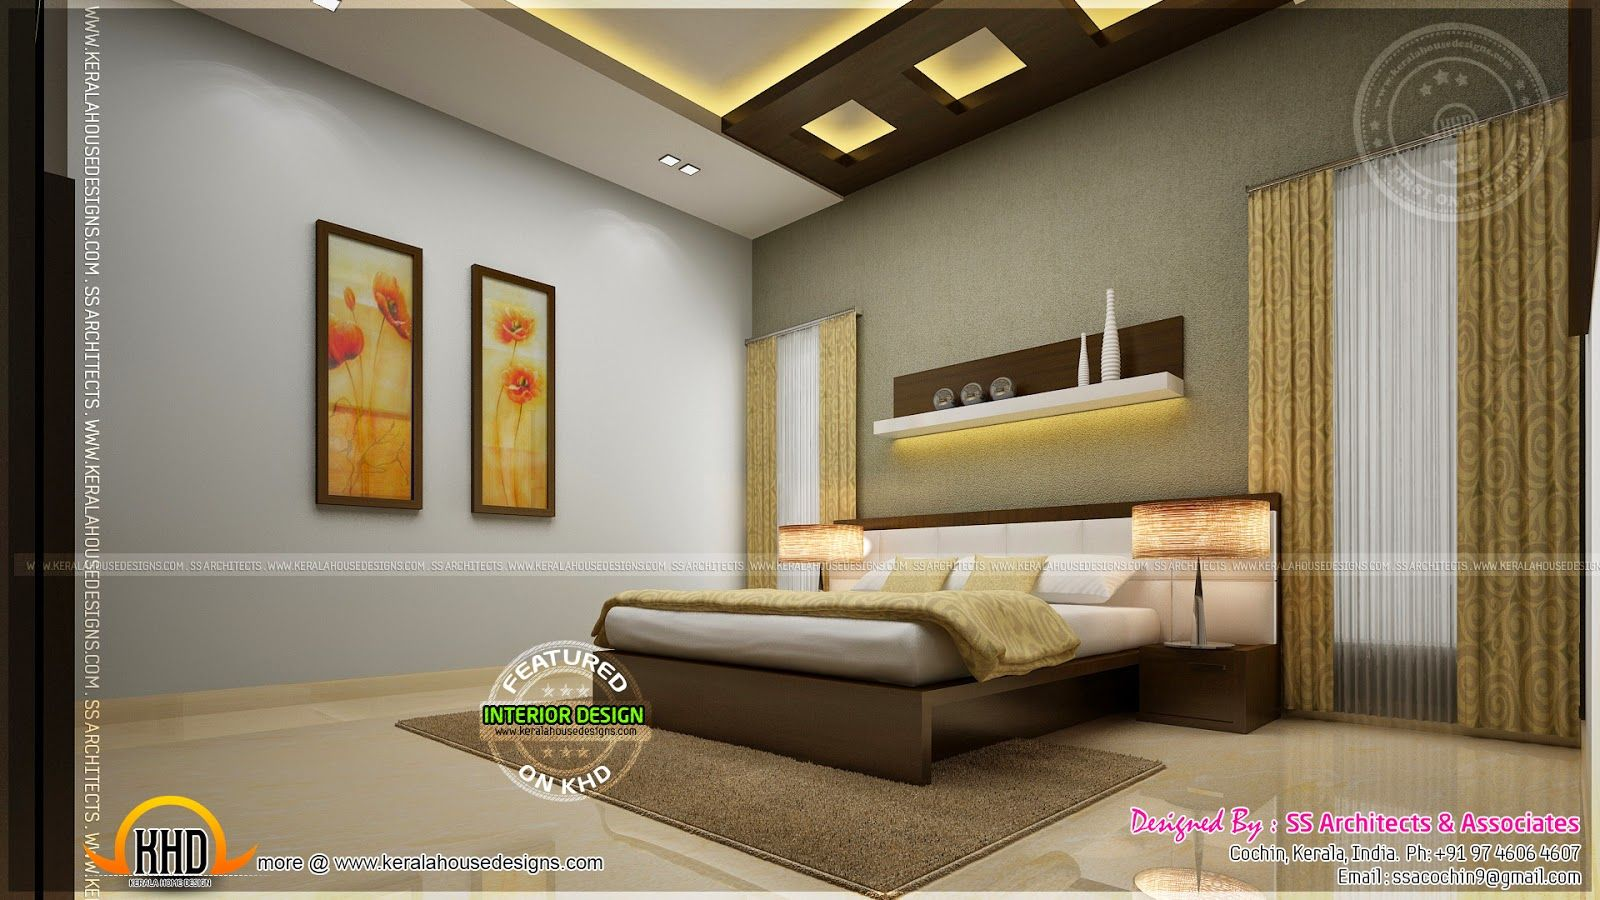 Indian master bedroom interior design google search for Master bedroom interior design images